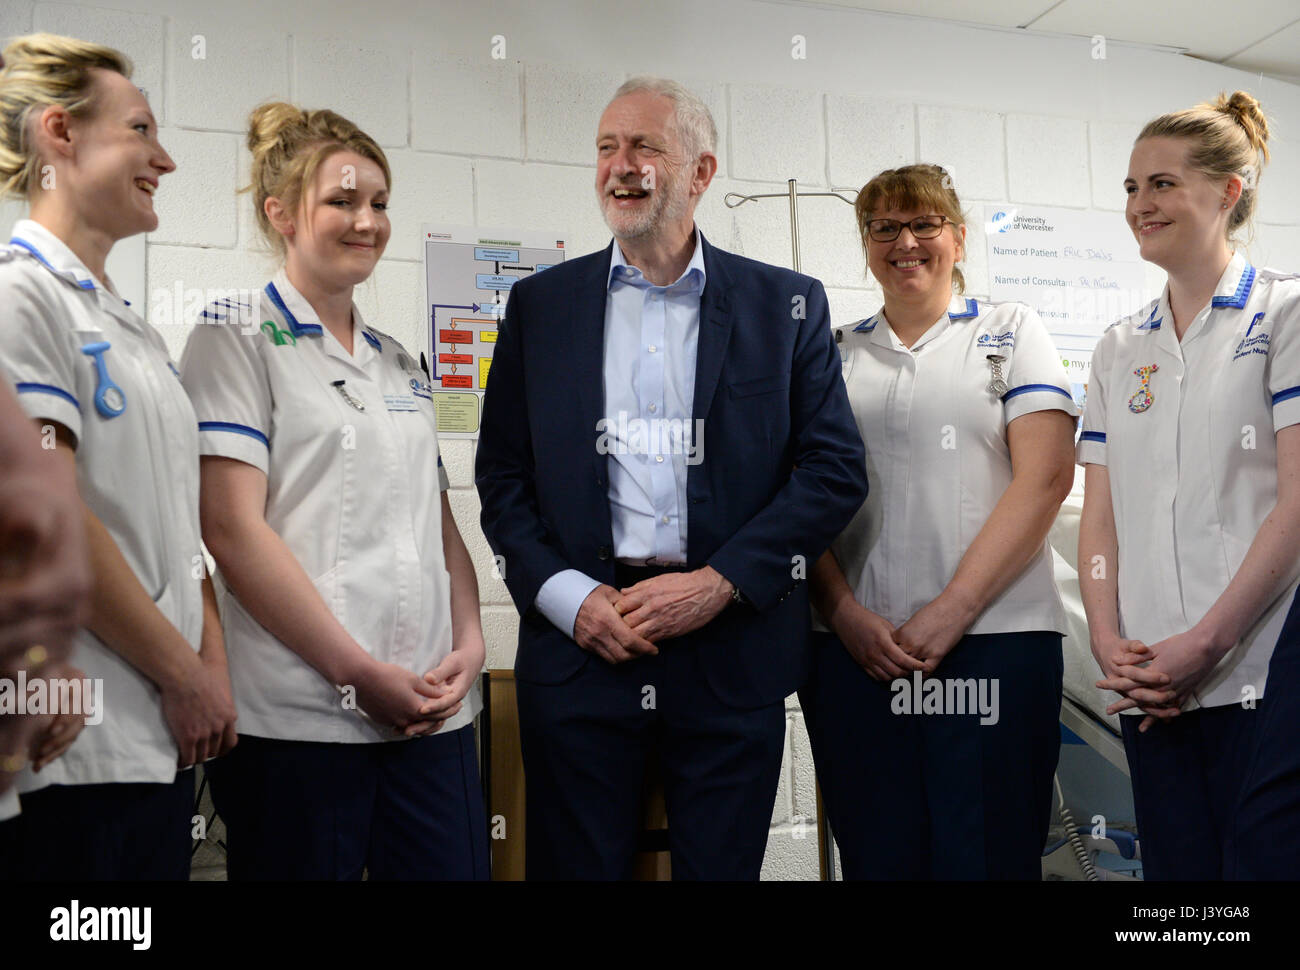 Labour leader Jeremy Corbyn meets nursing students at the